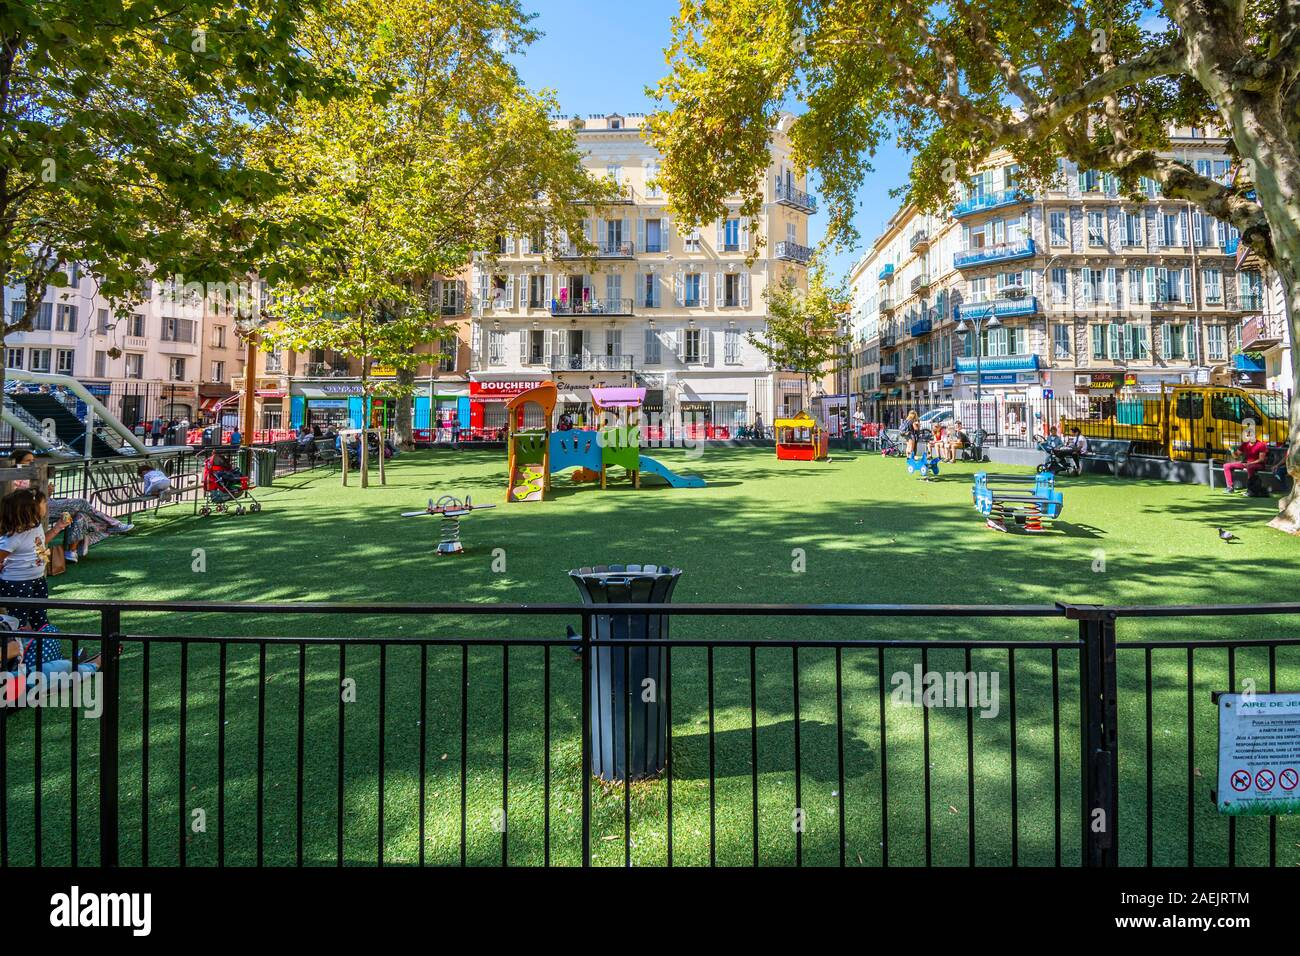 Children play in a small fenced playground school yard in the urban center of Nice, France. Stock Photo